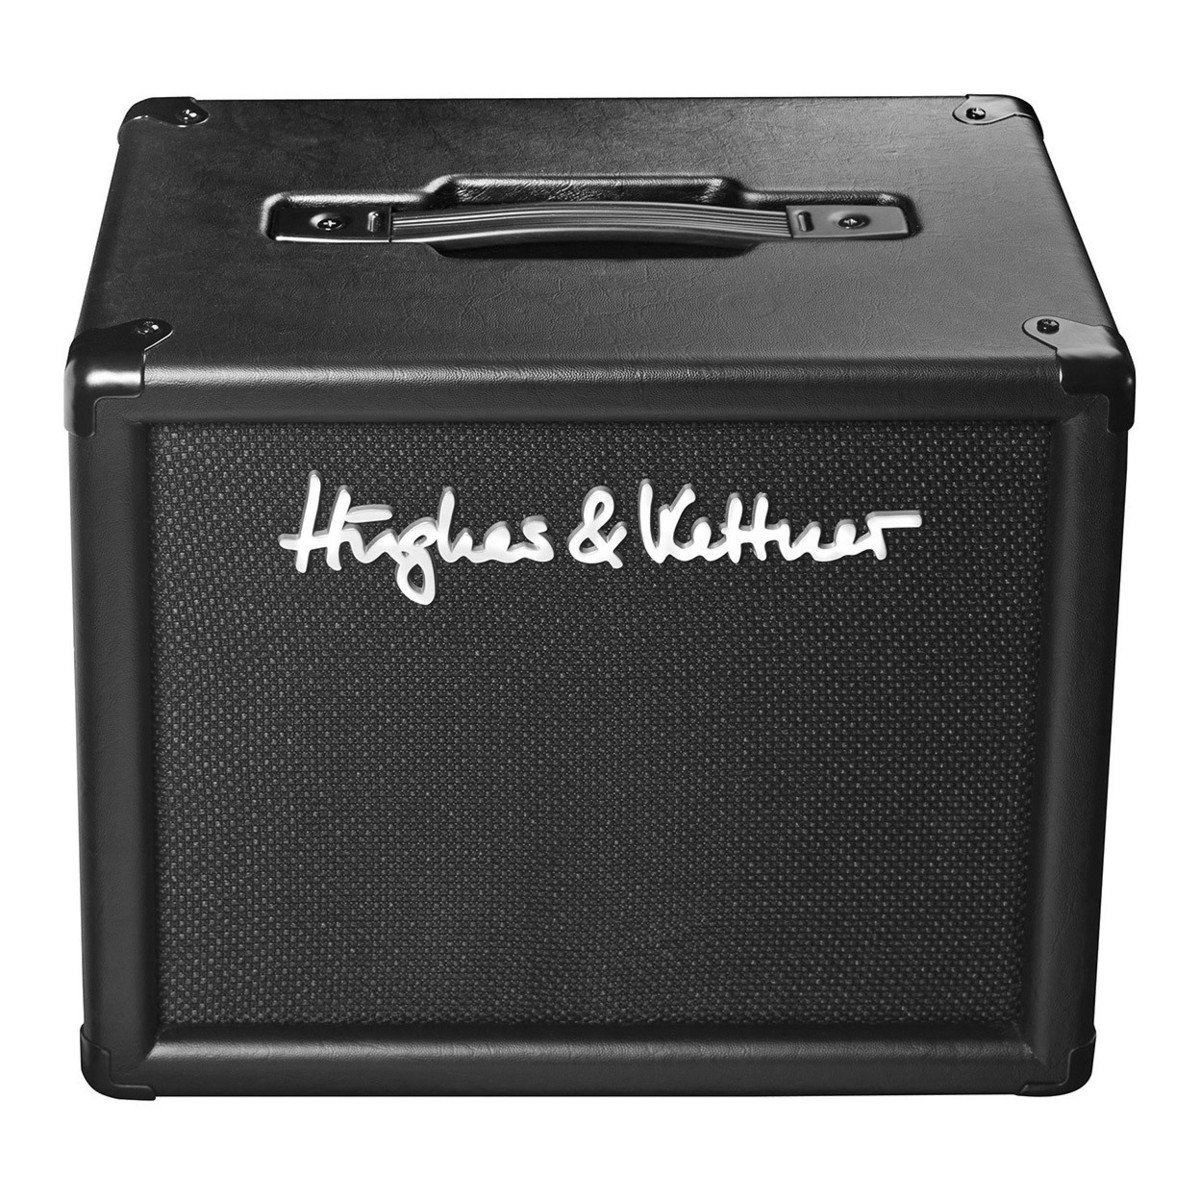 Click to view product details and reviews for Hughes Kettner Tm 110 Cabinet 1x10.